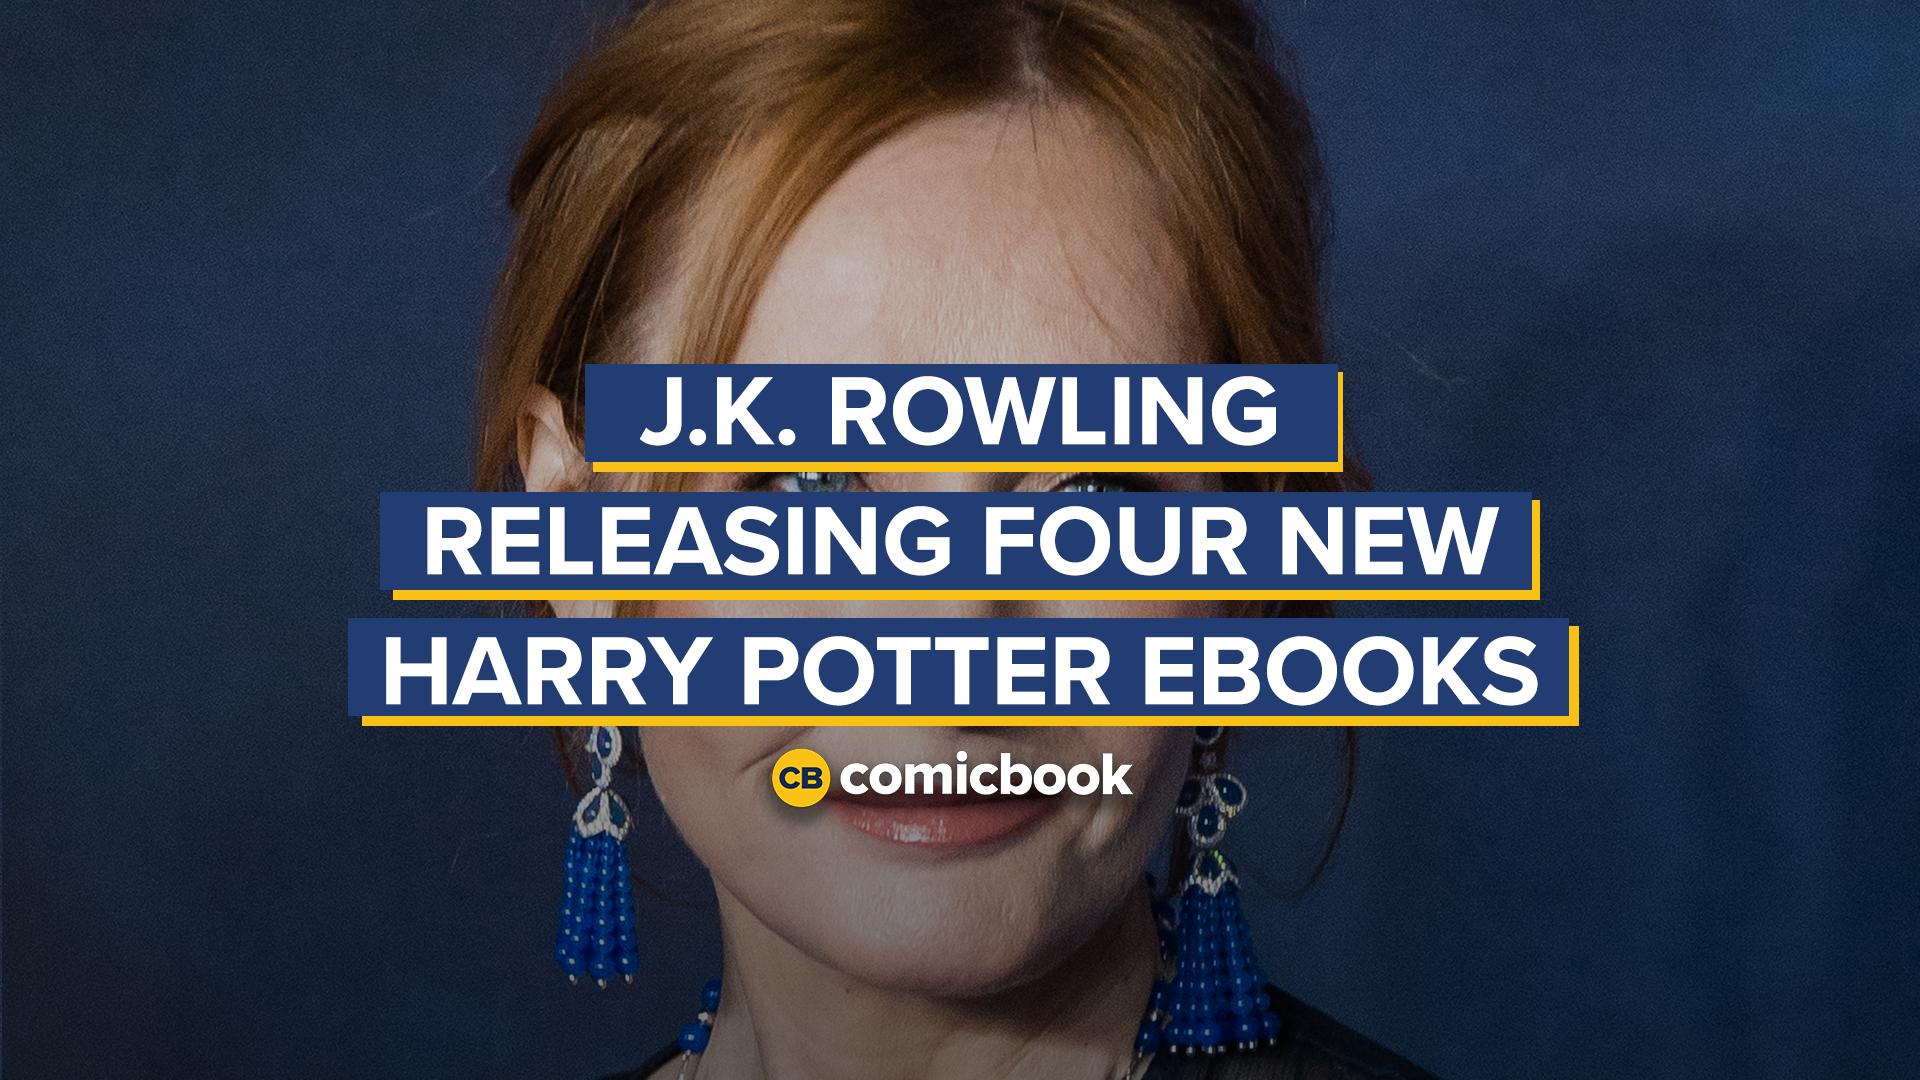 JK Rowling Releasing Four New Harry Potter Books screen capture